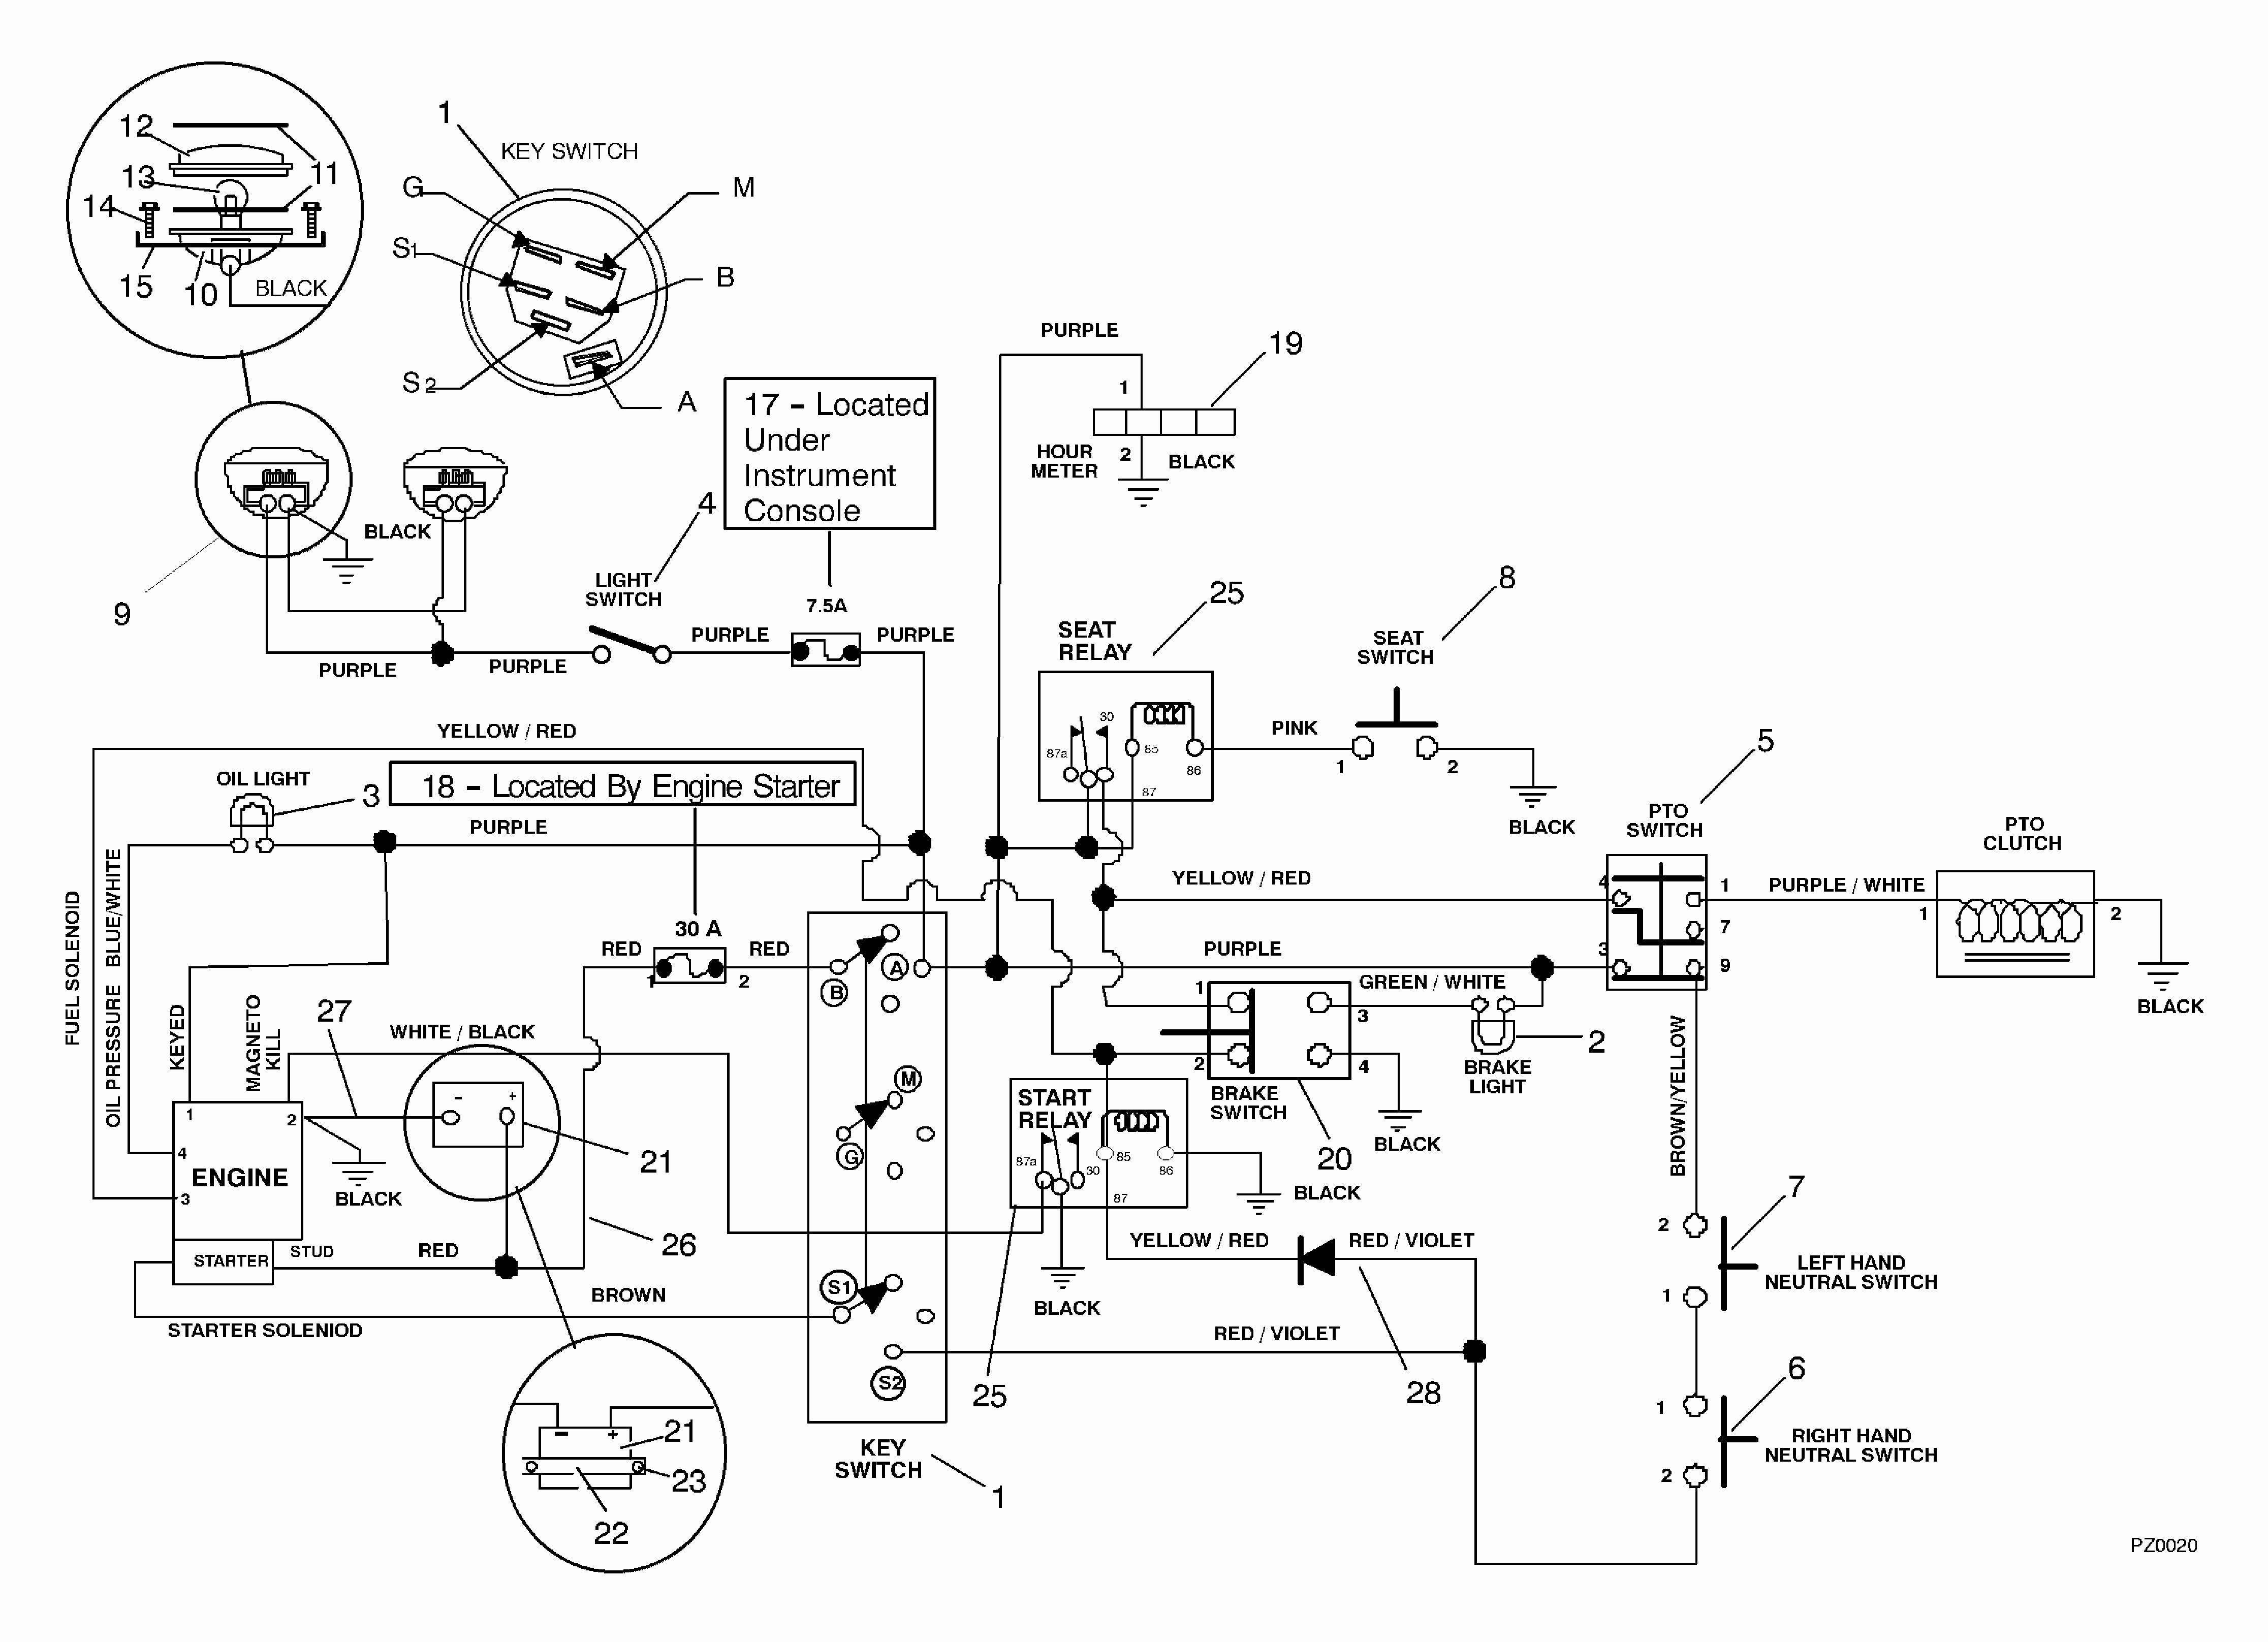 Kohler Ignition Coil Wiring Diagram